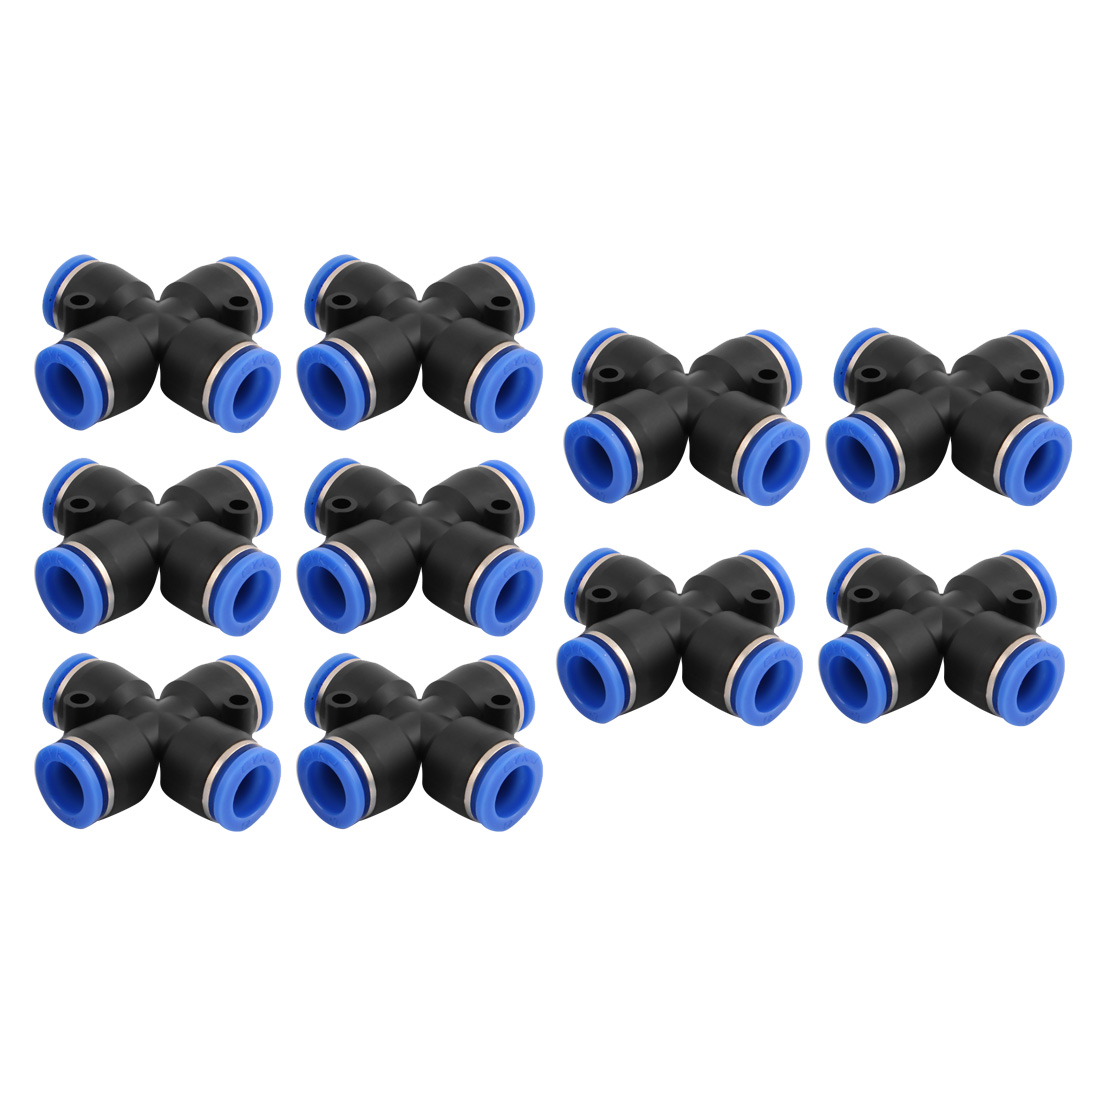 10Pcs 12mm Dia 4 Ways Tube Hose Pneumatic Air Quick Fitting Push In Connector Black